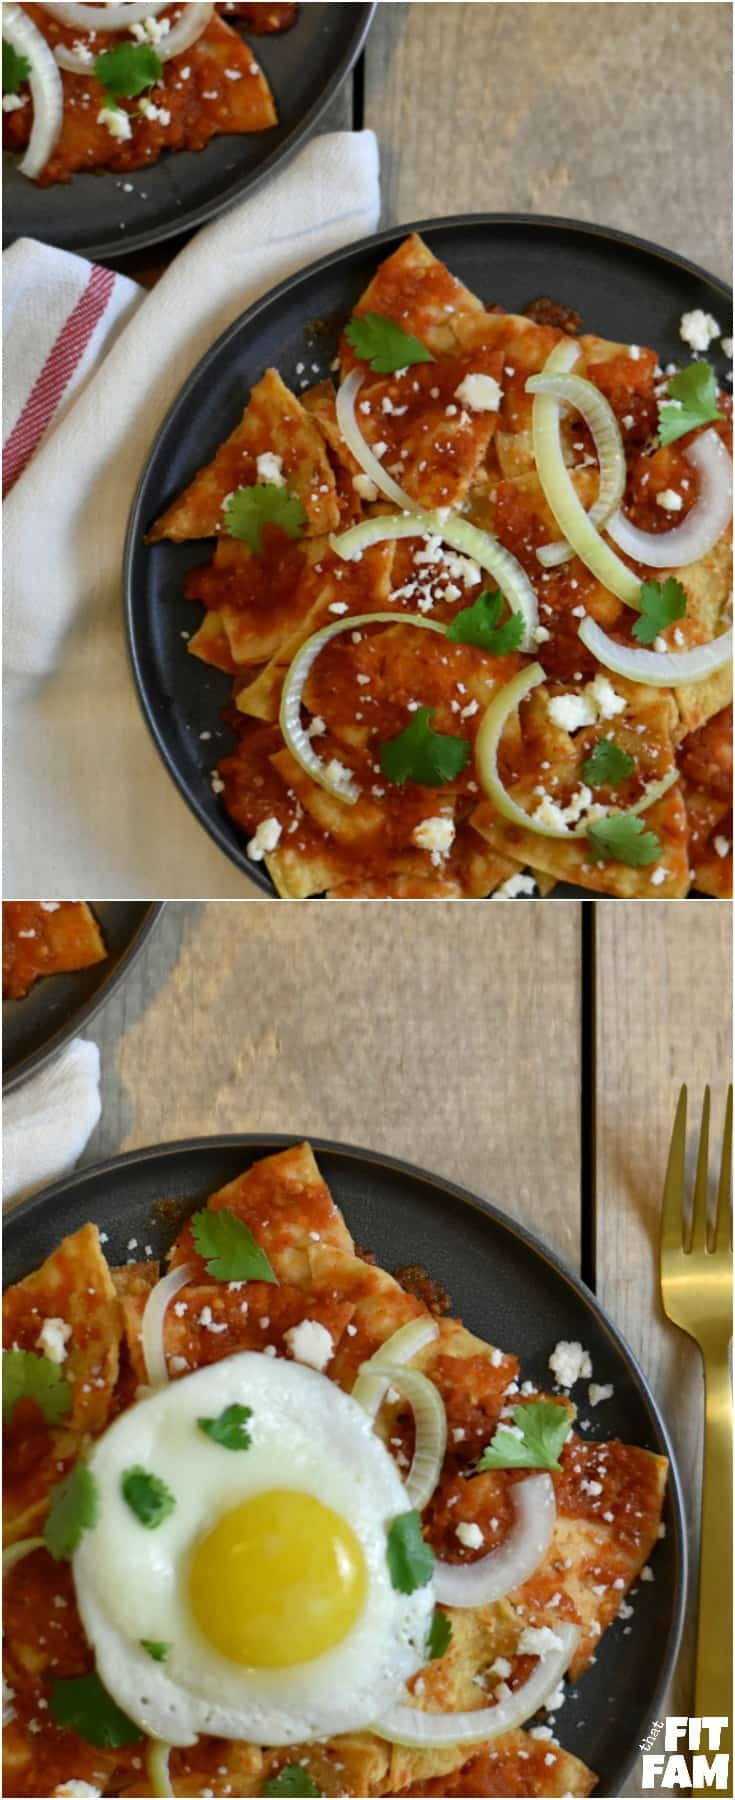 These chilaquiles are good for breakfast, lunch, or dinner. It just depends on your toppings. If you want it for breakfast, add a fried egg. If you want it for lunch or dinner, add some shredded rotisserie chicken. Then garnish as desired!